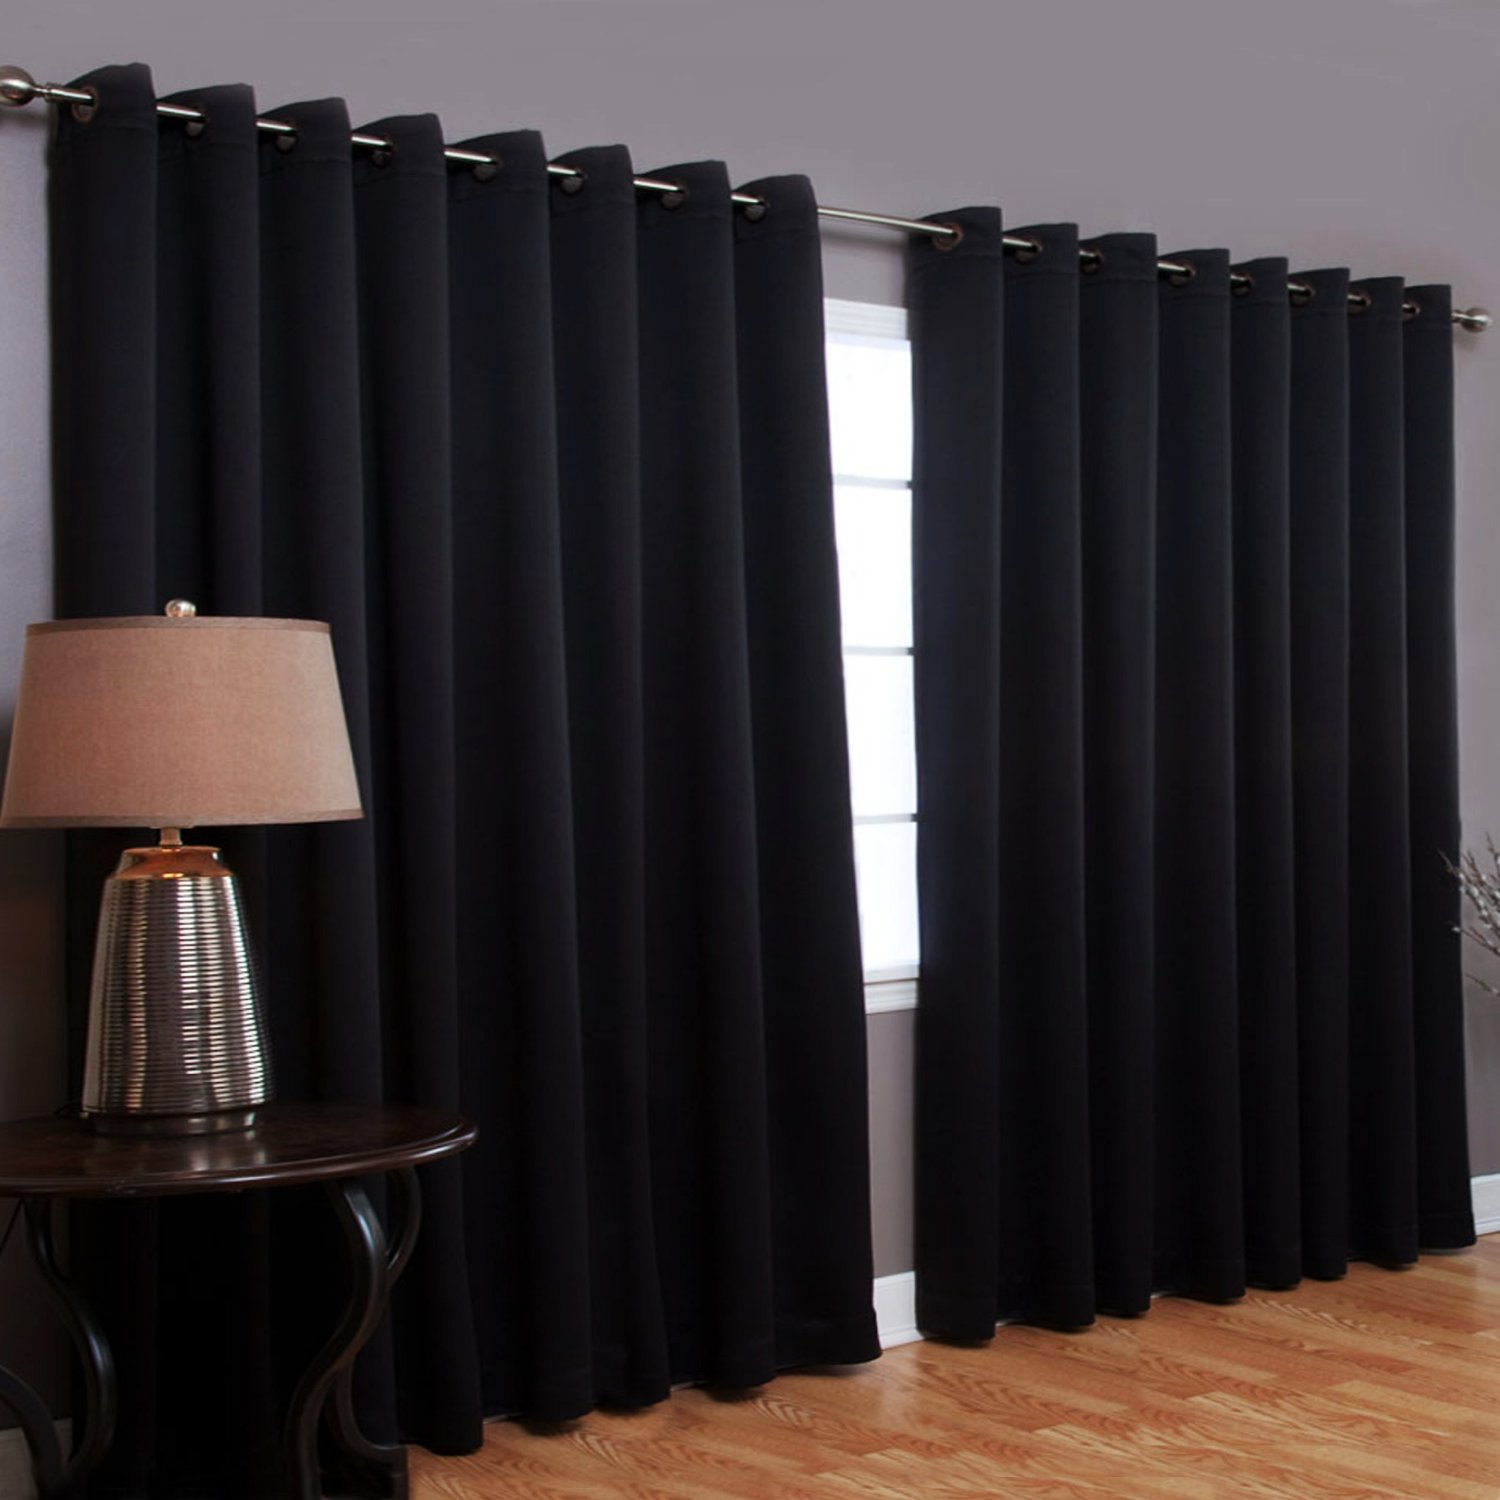 blackoutdrapes